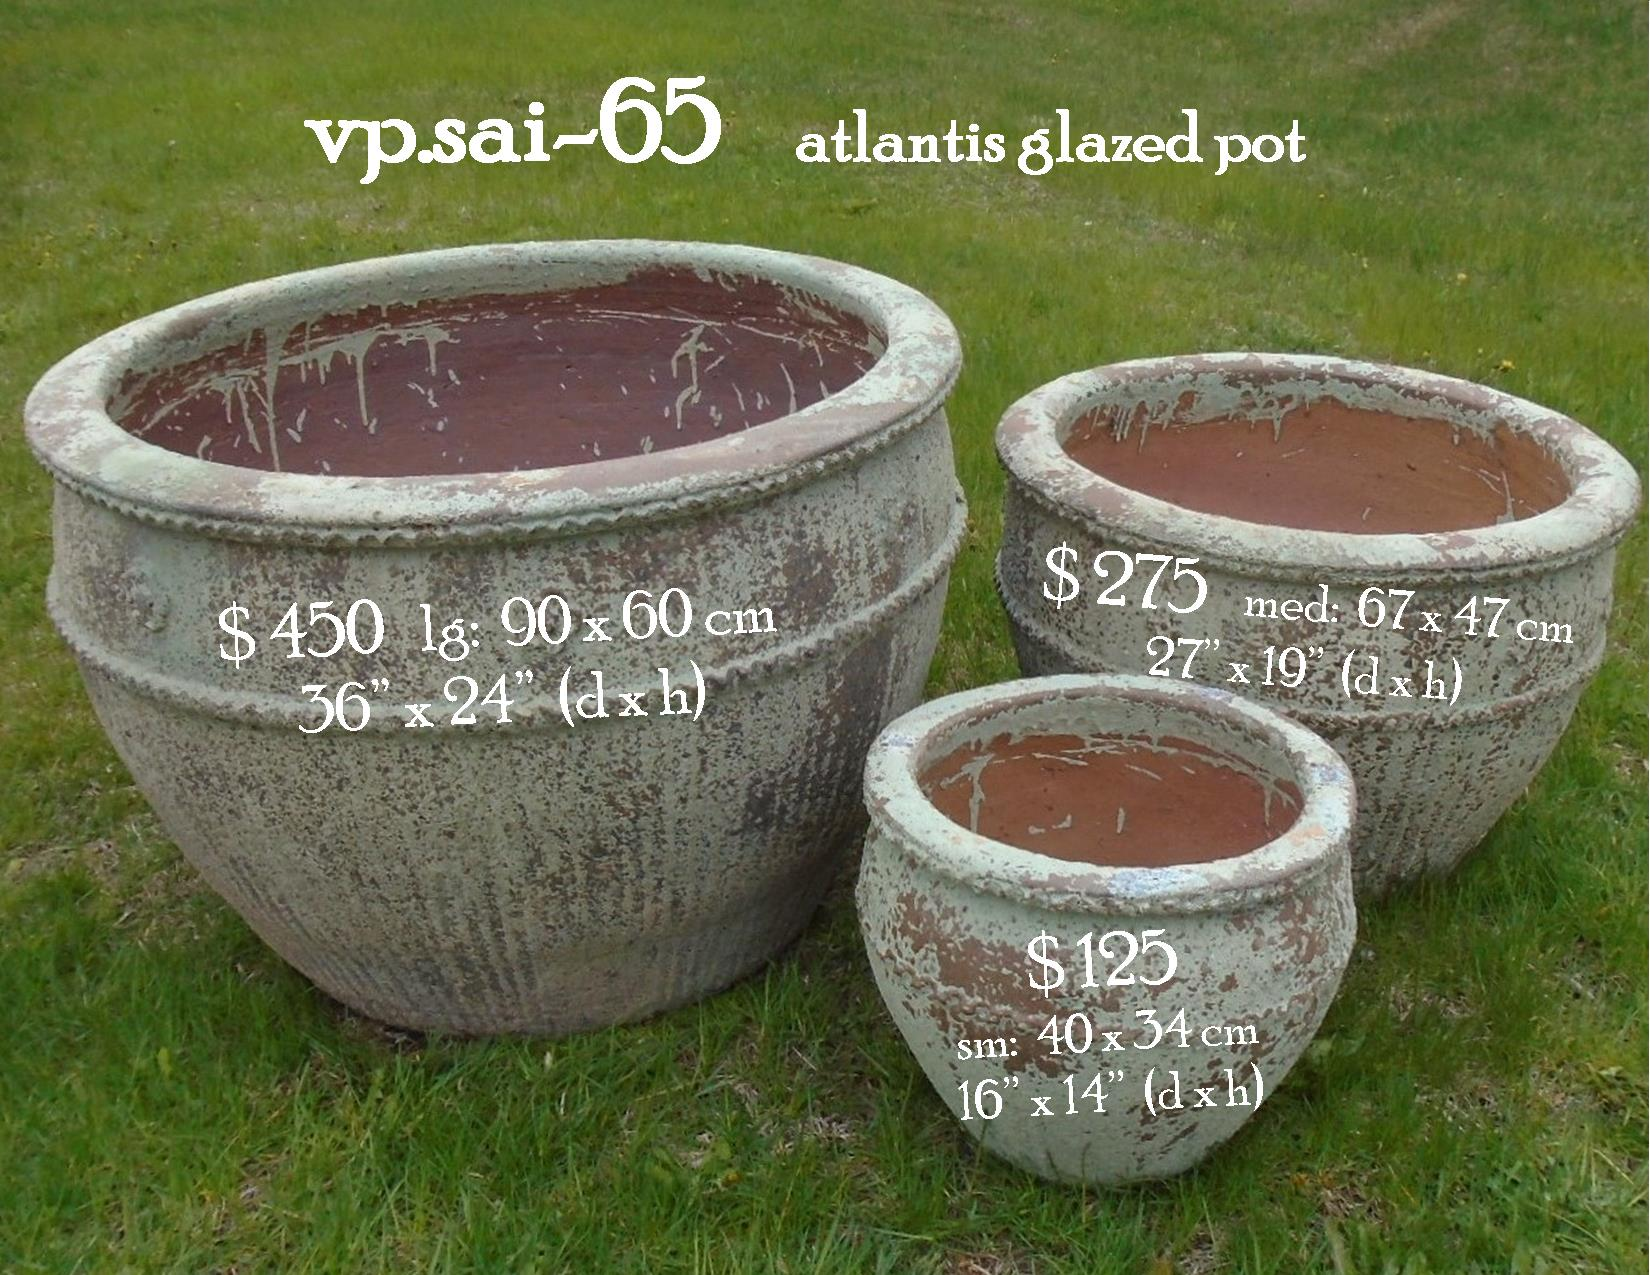 vp.sai-65    atlantis glazed pot